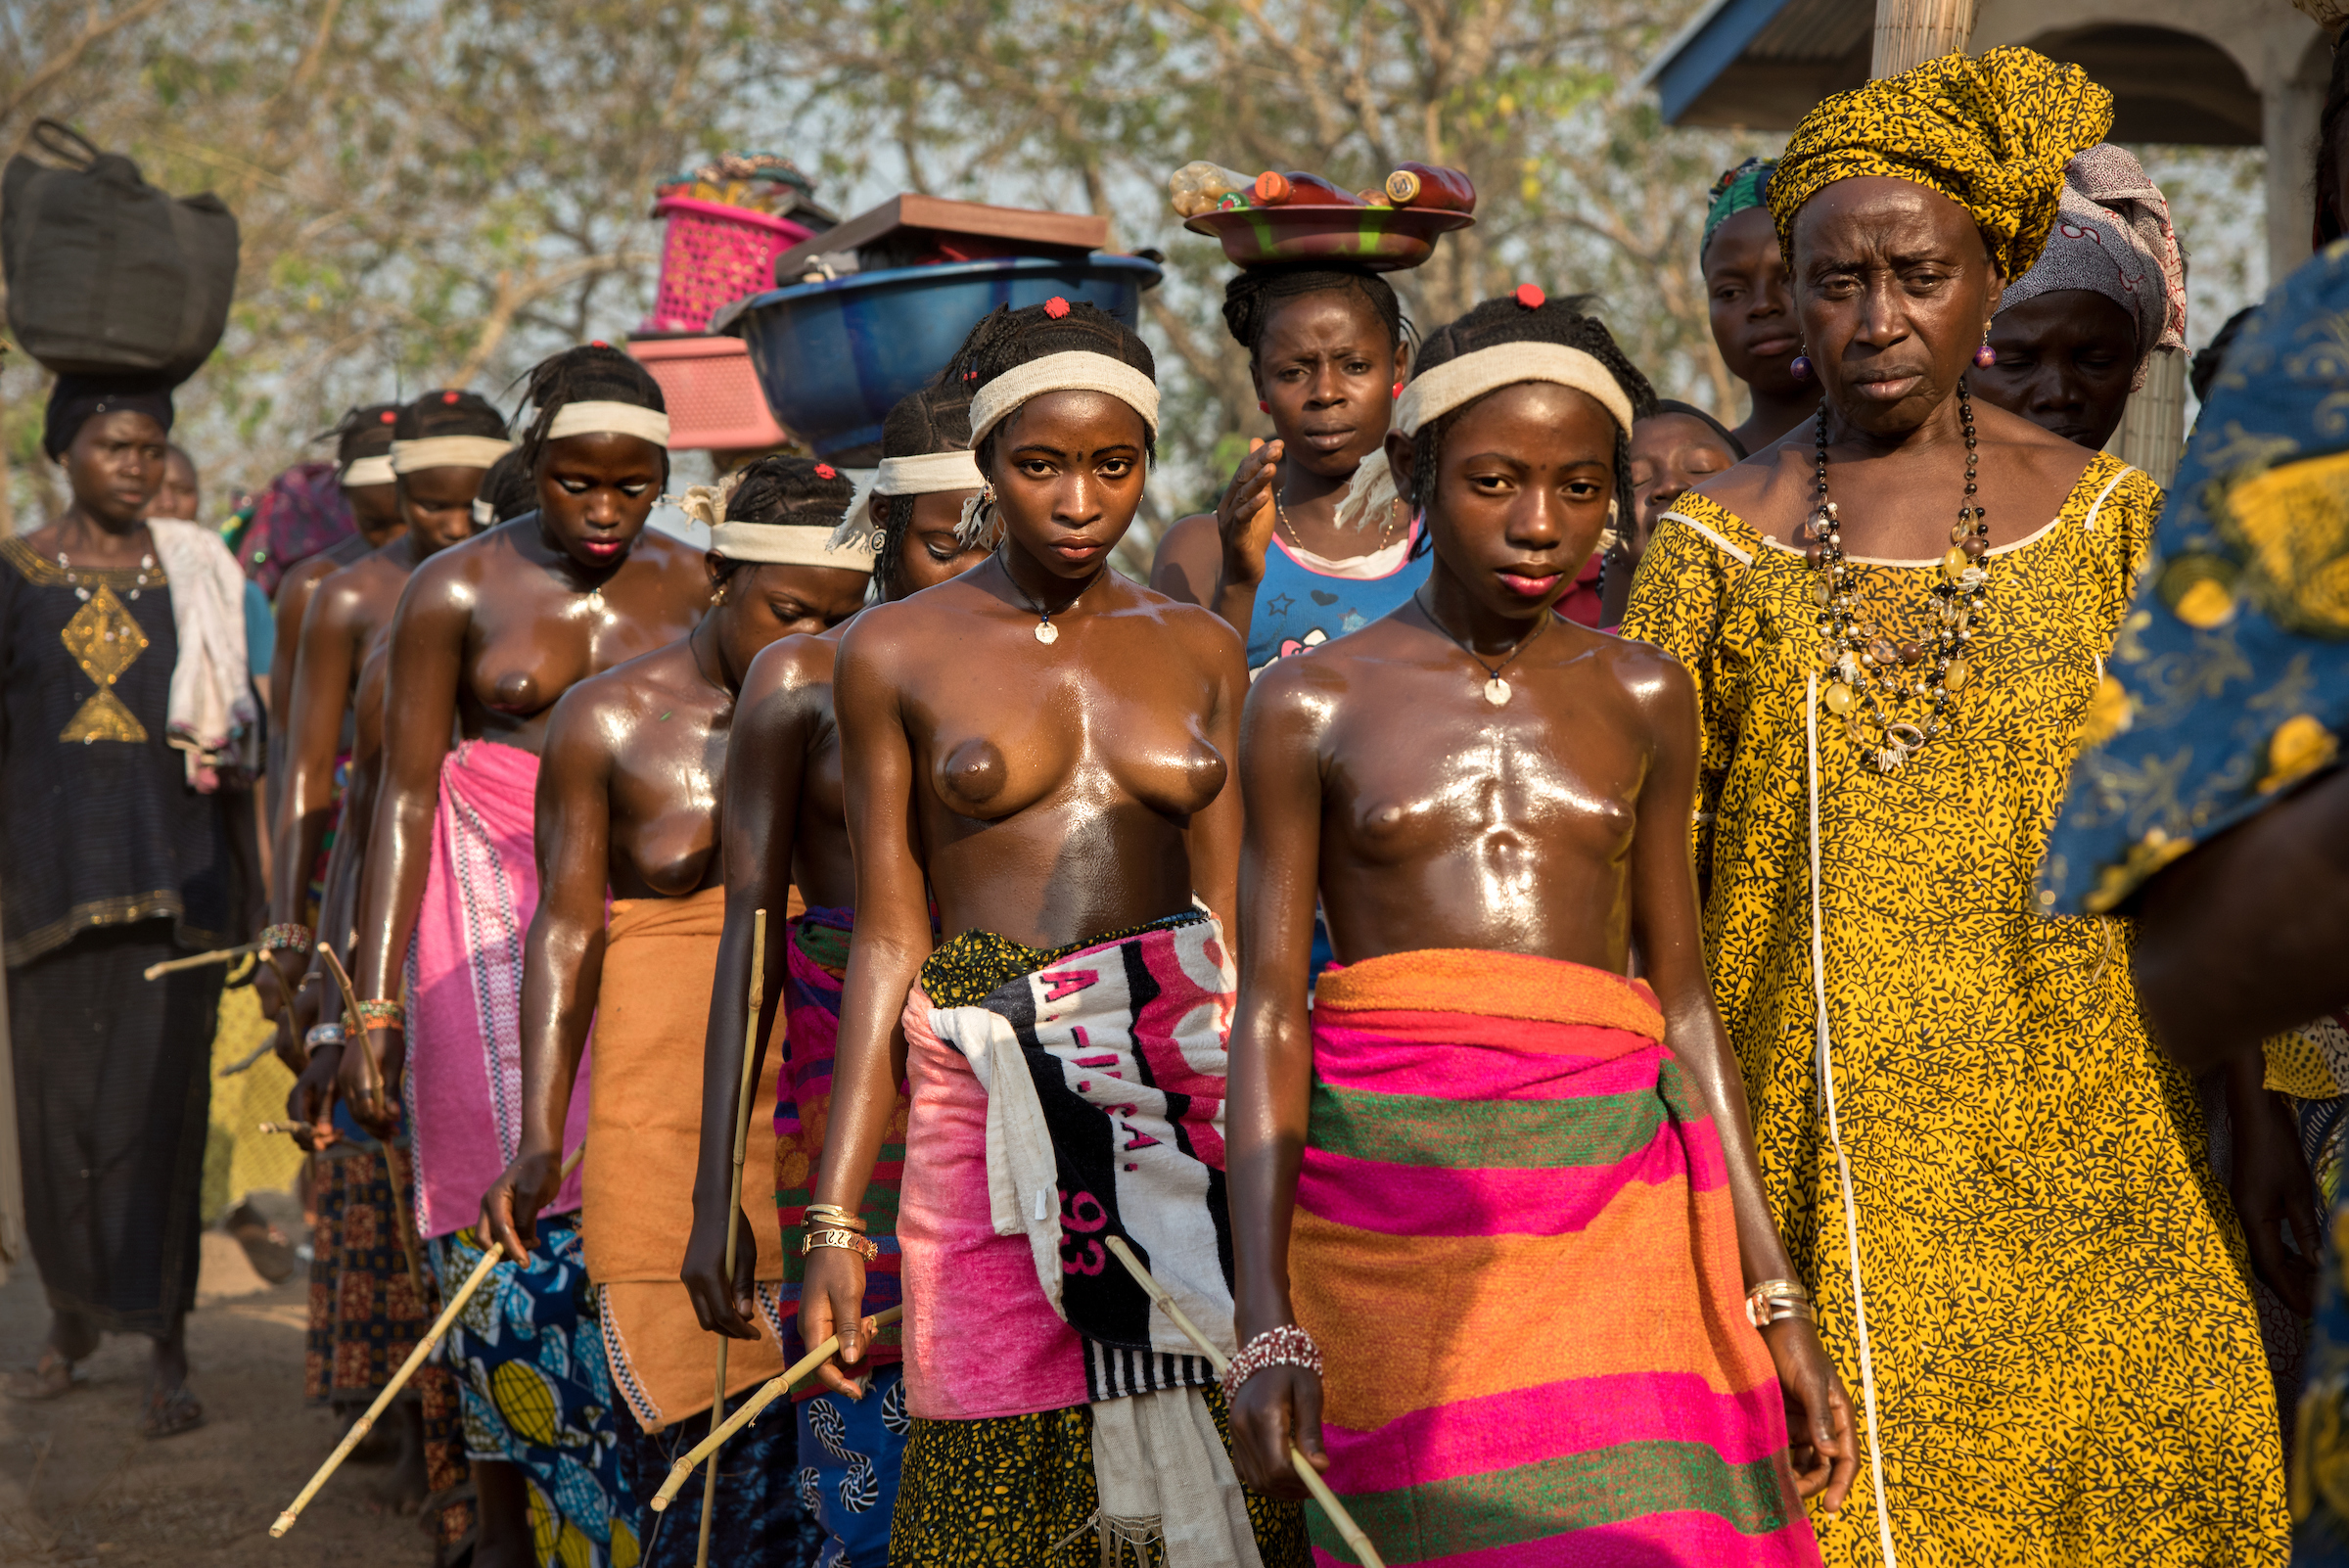 Adolescent girls return from the bush at the conclusion of their initiation ceremony.